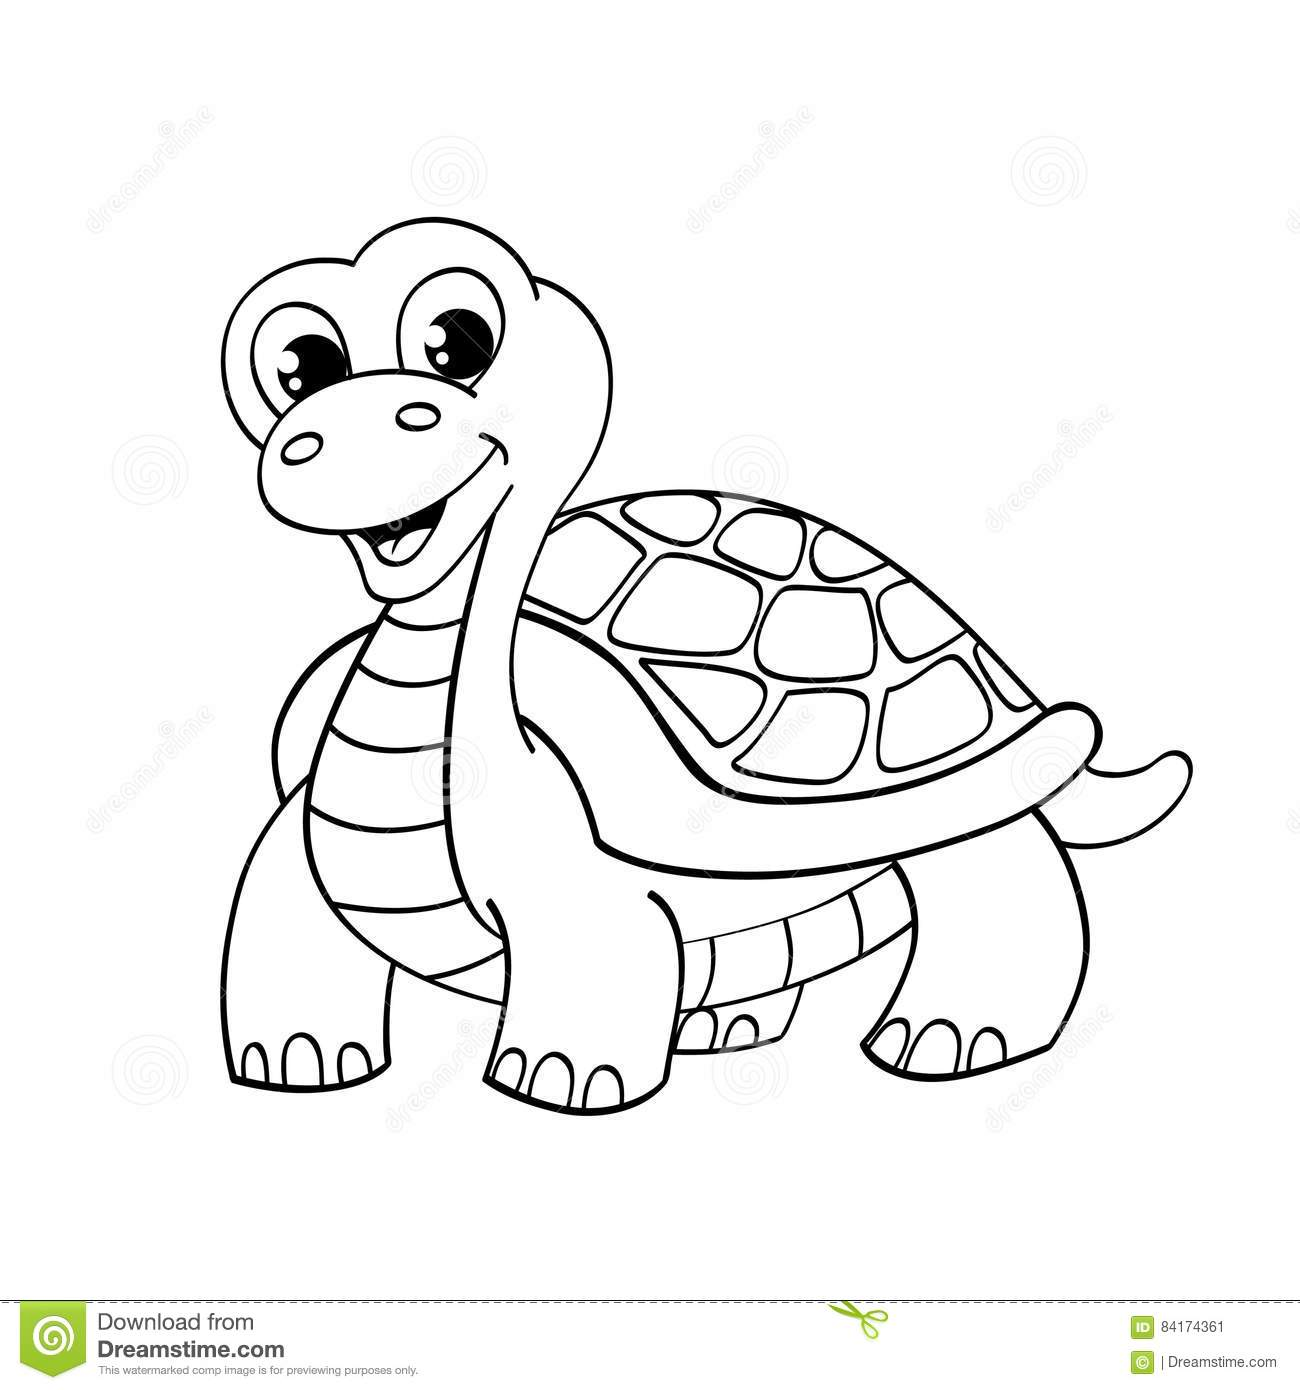 This is a photo of Peaceful Turtle Cartoon Drawing